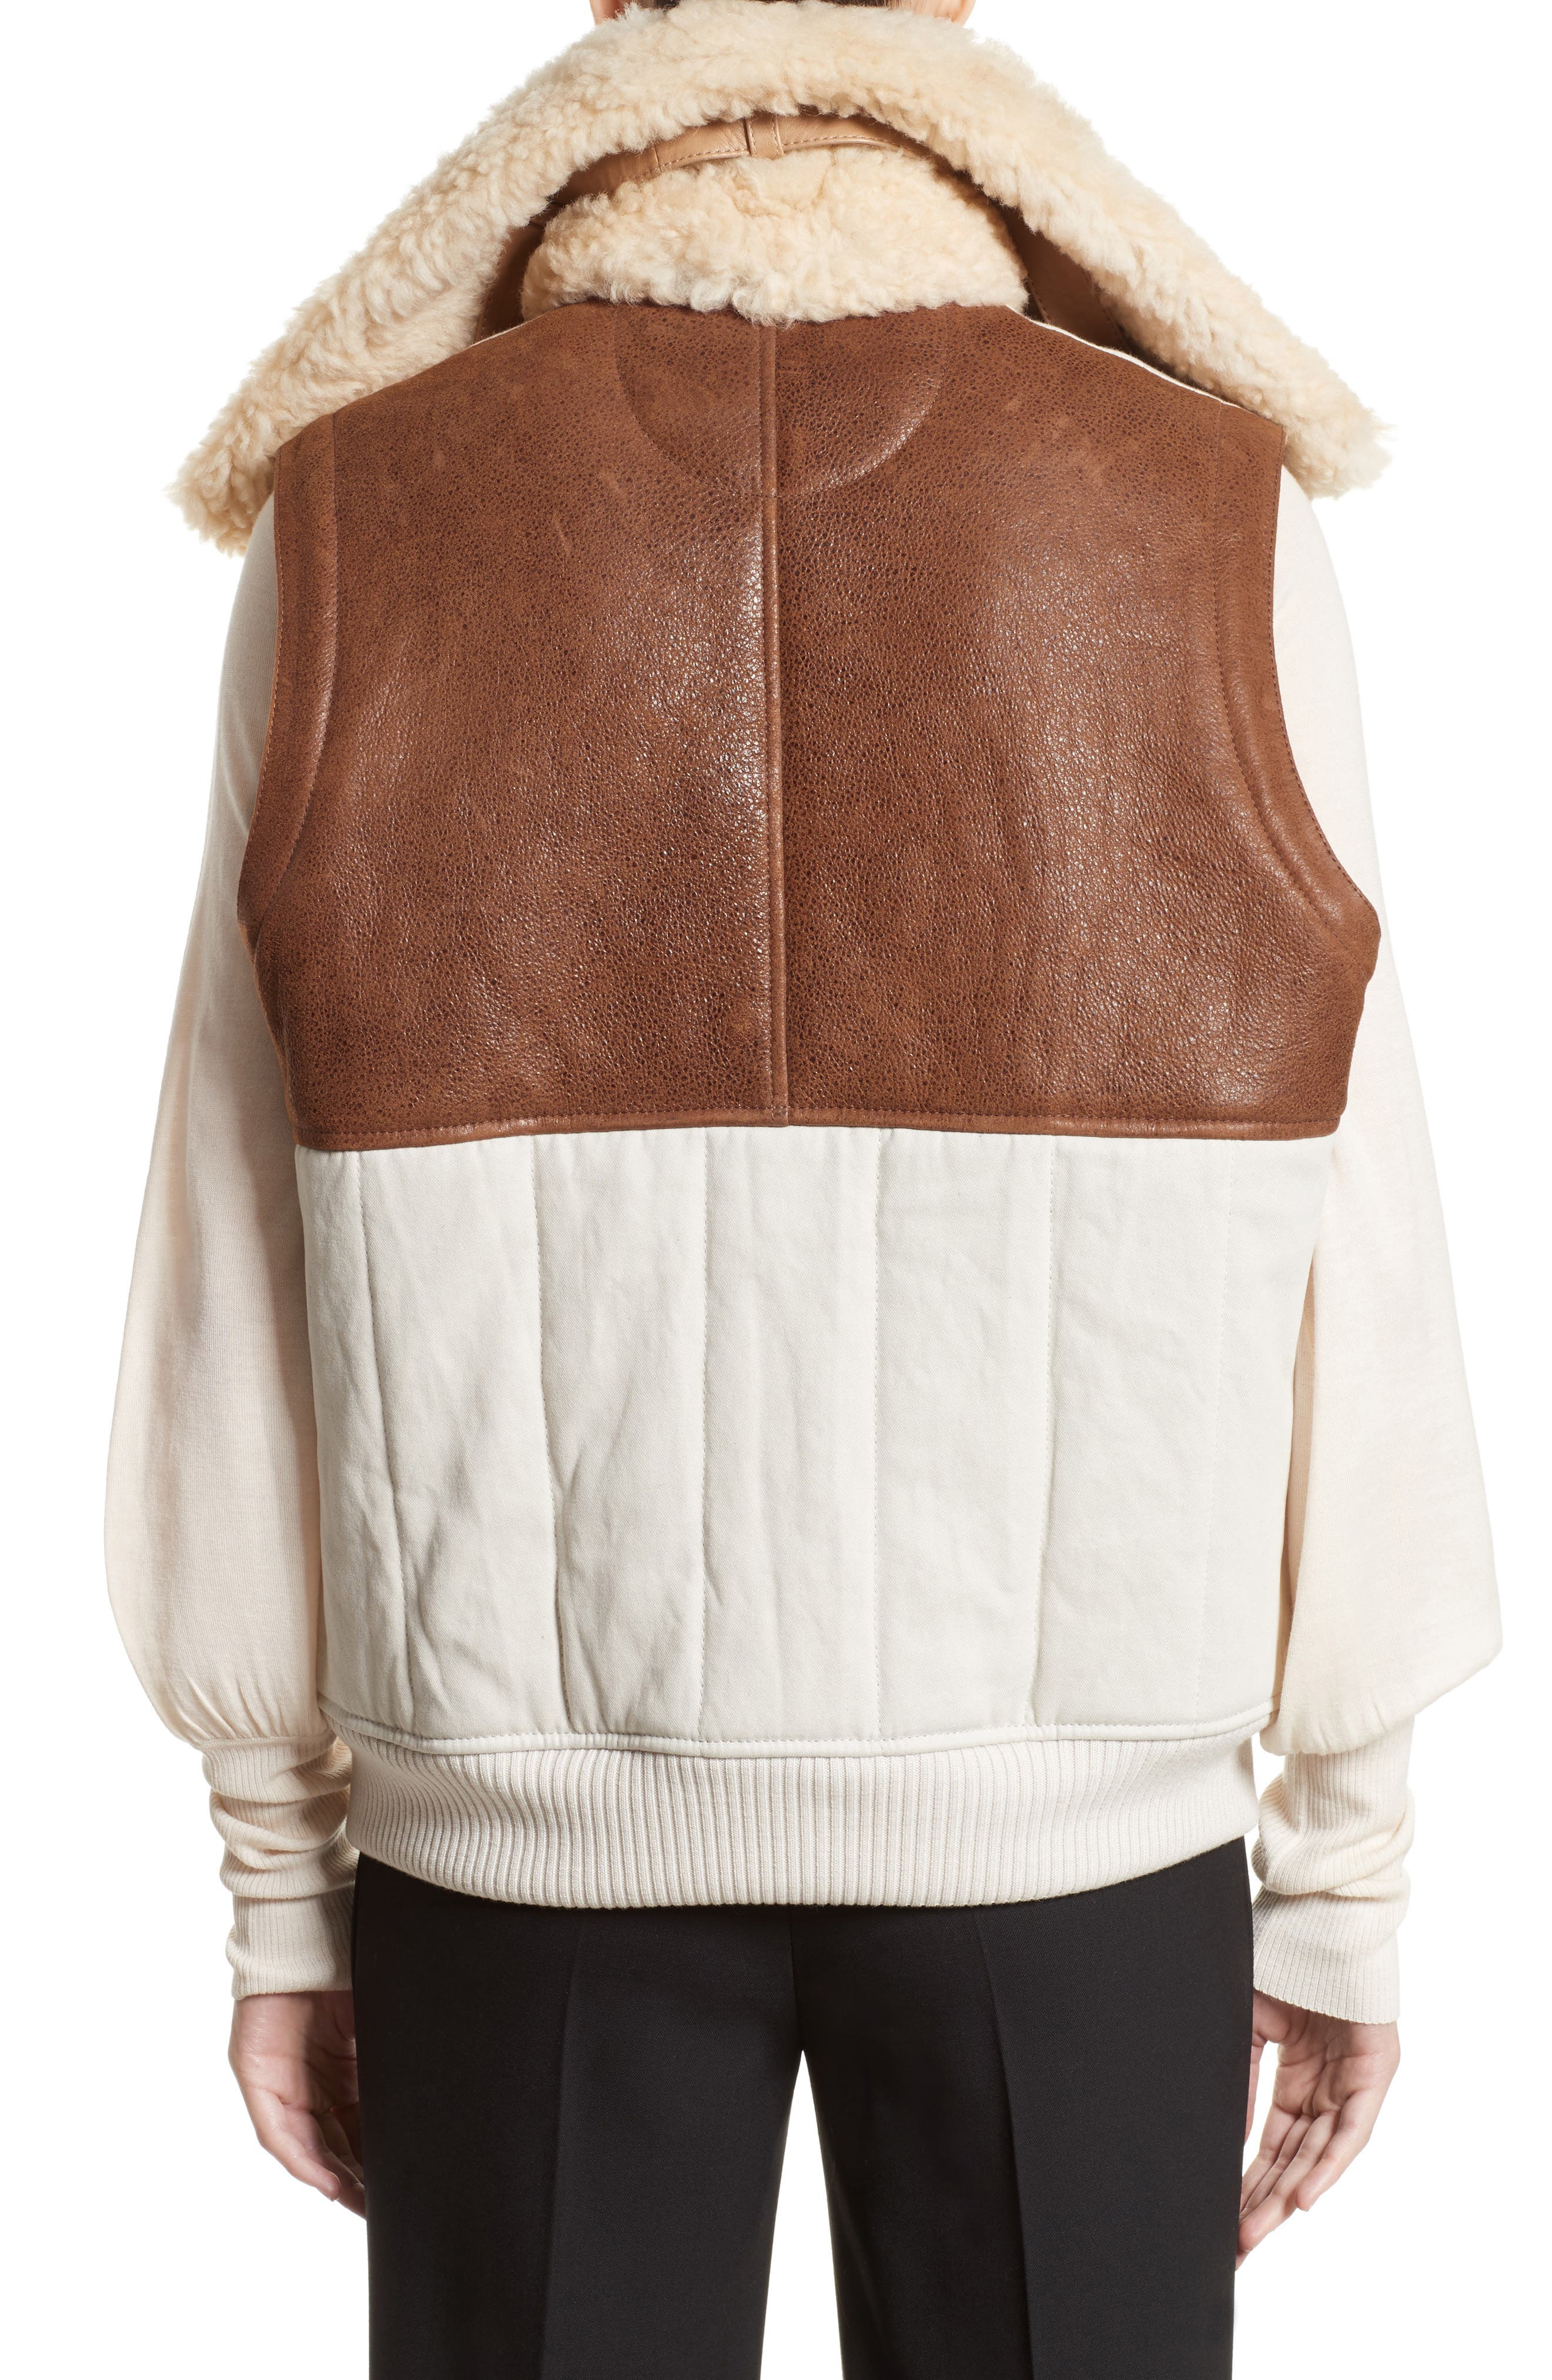 Genuine Shearling Trim Leather & Cotton Vest,                             Alternate thumbnail 3, color,                             Brown/ Beige